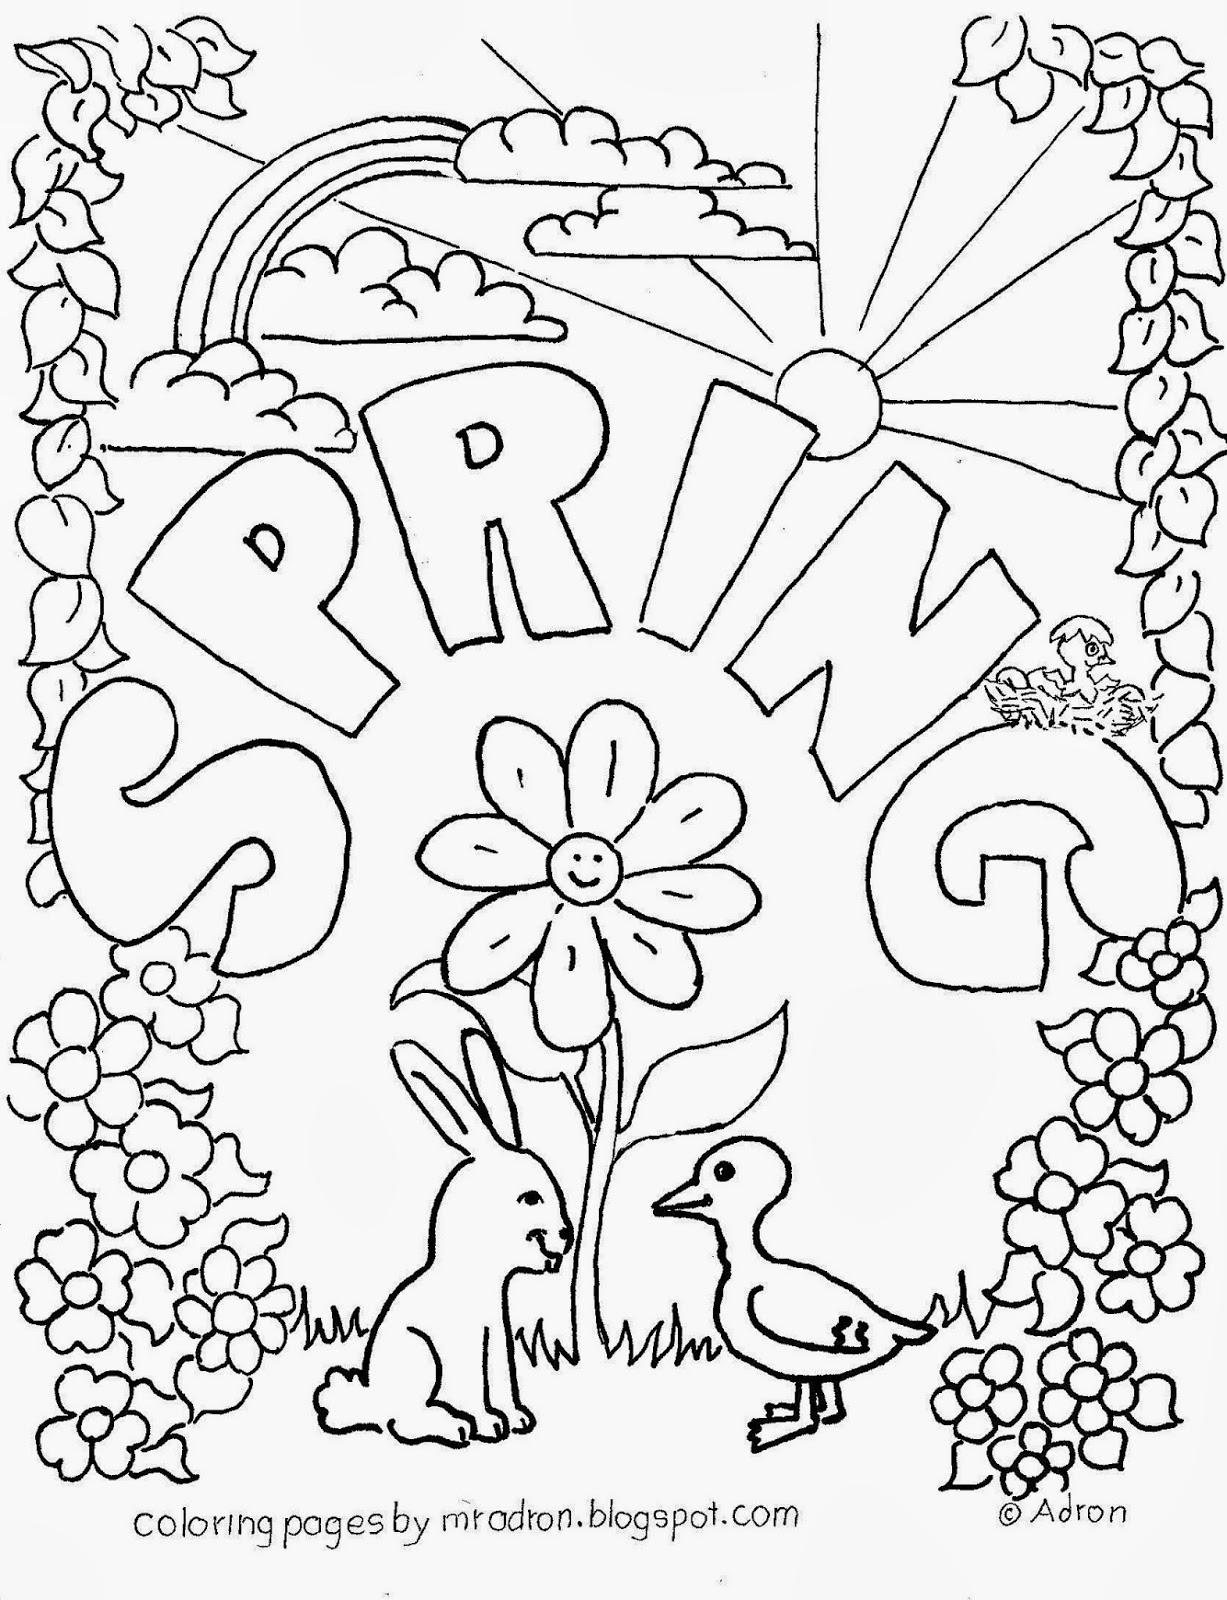 Free Coloring Pages For Elementary Students At